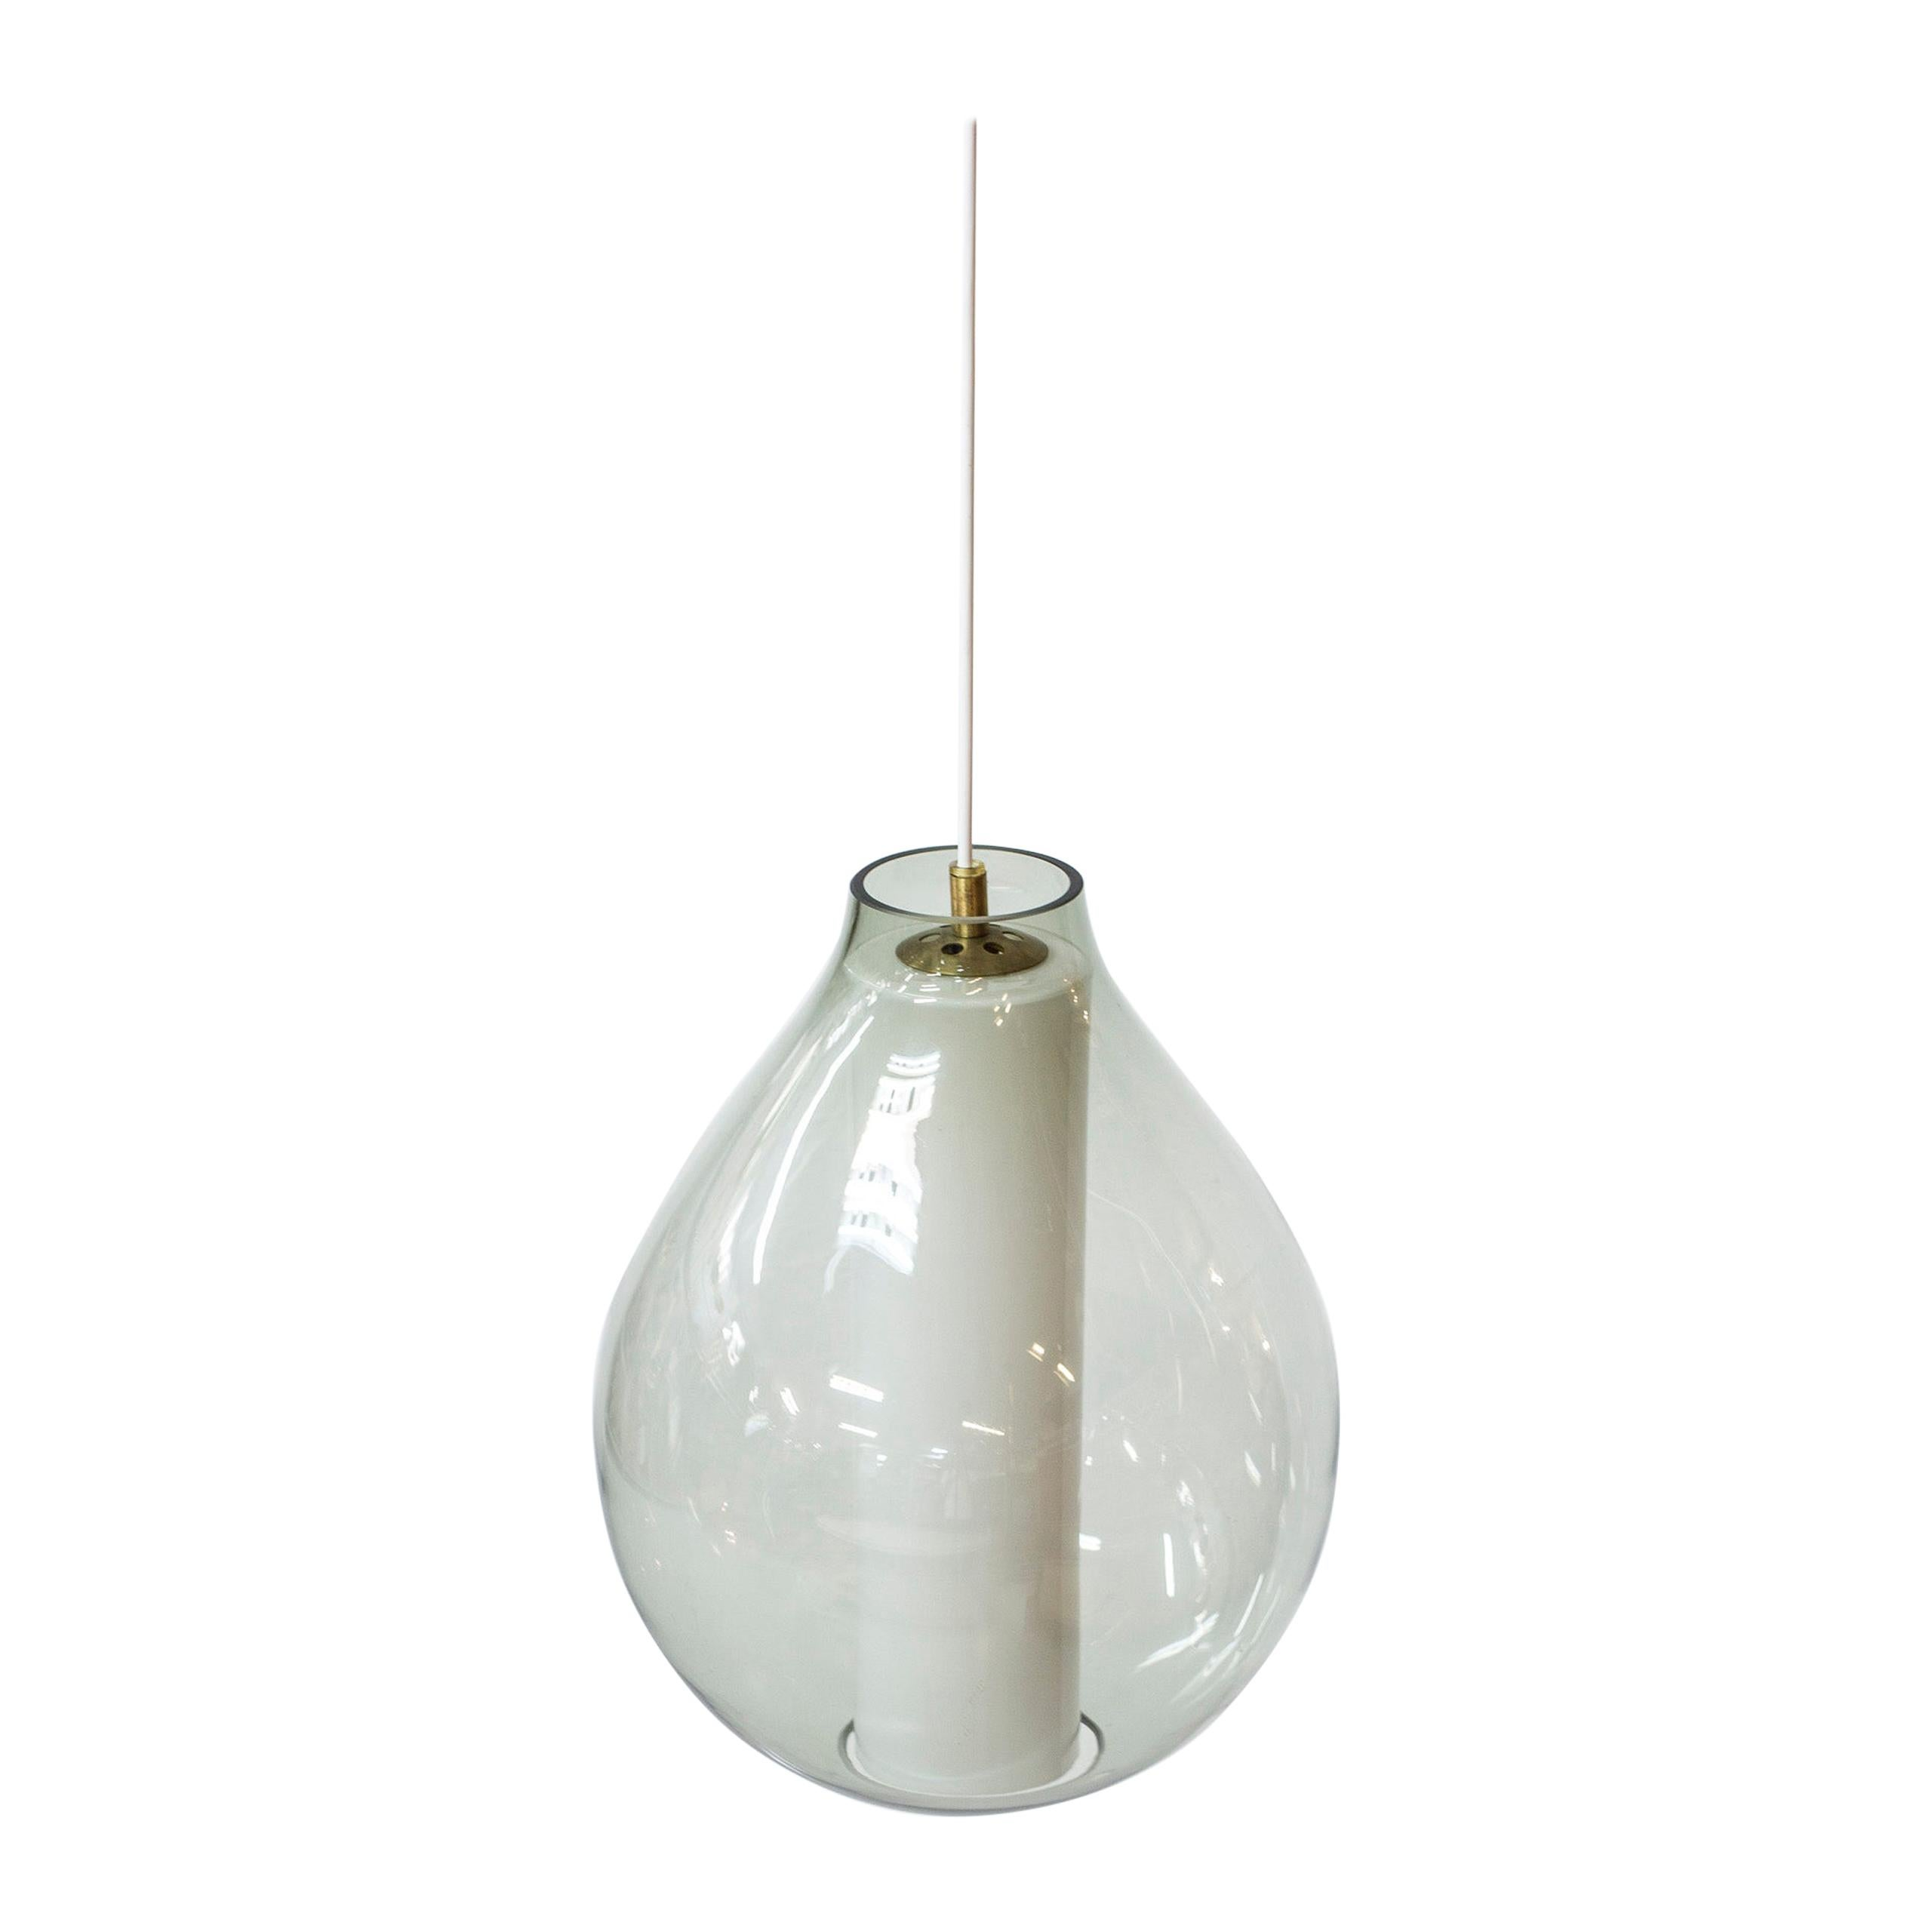 Rare Pendant Lamp Designed by Carl Fagerlund for Orrefors, Sweden, 1950s